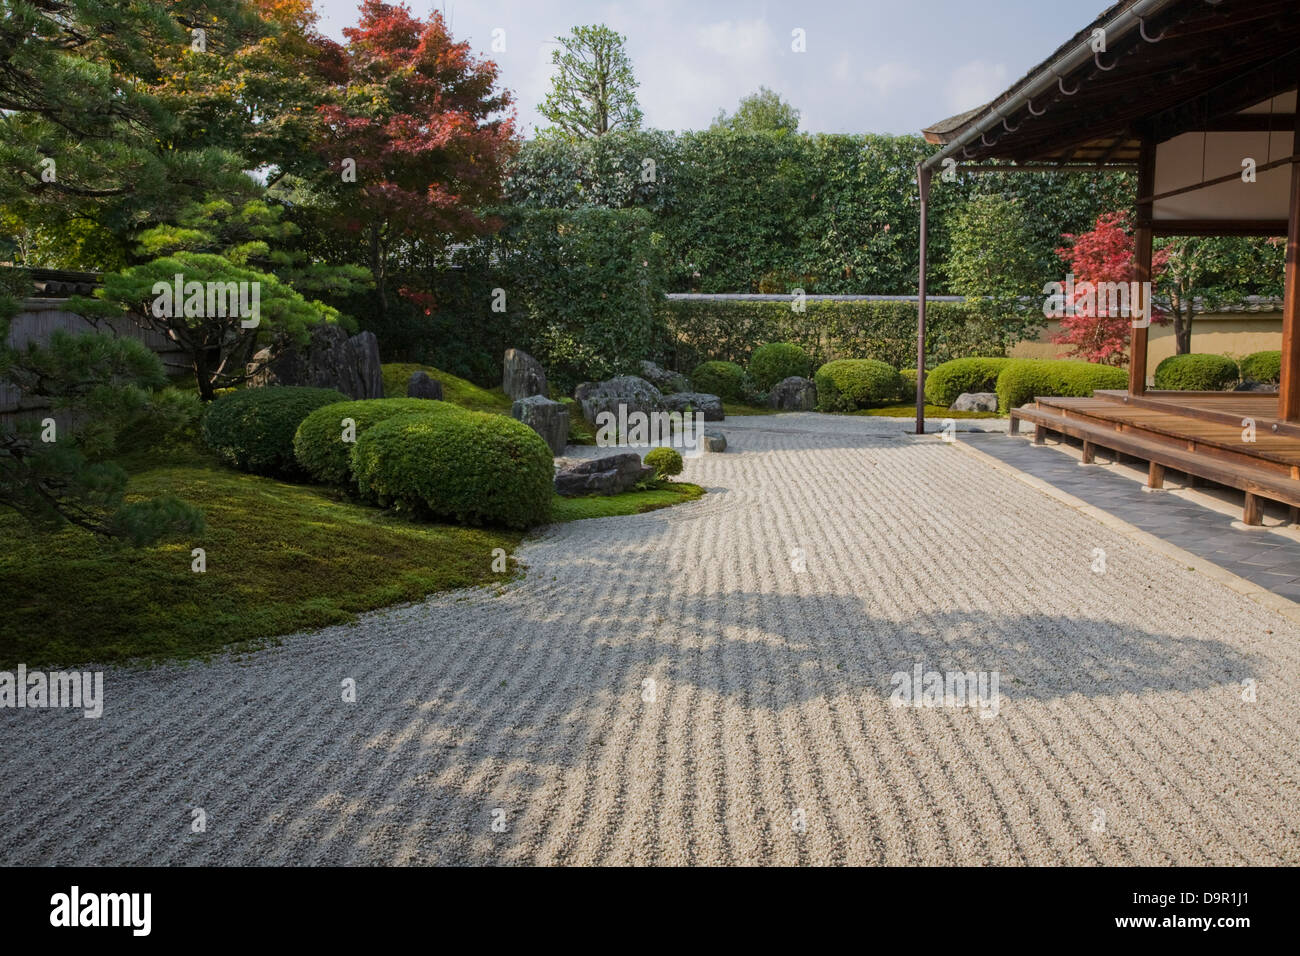 Korin-in uses typical Zen style architecture and landscaping of the Muromachi period. - Stock Image